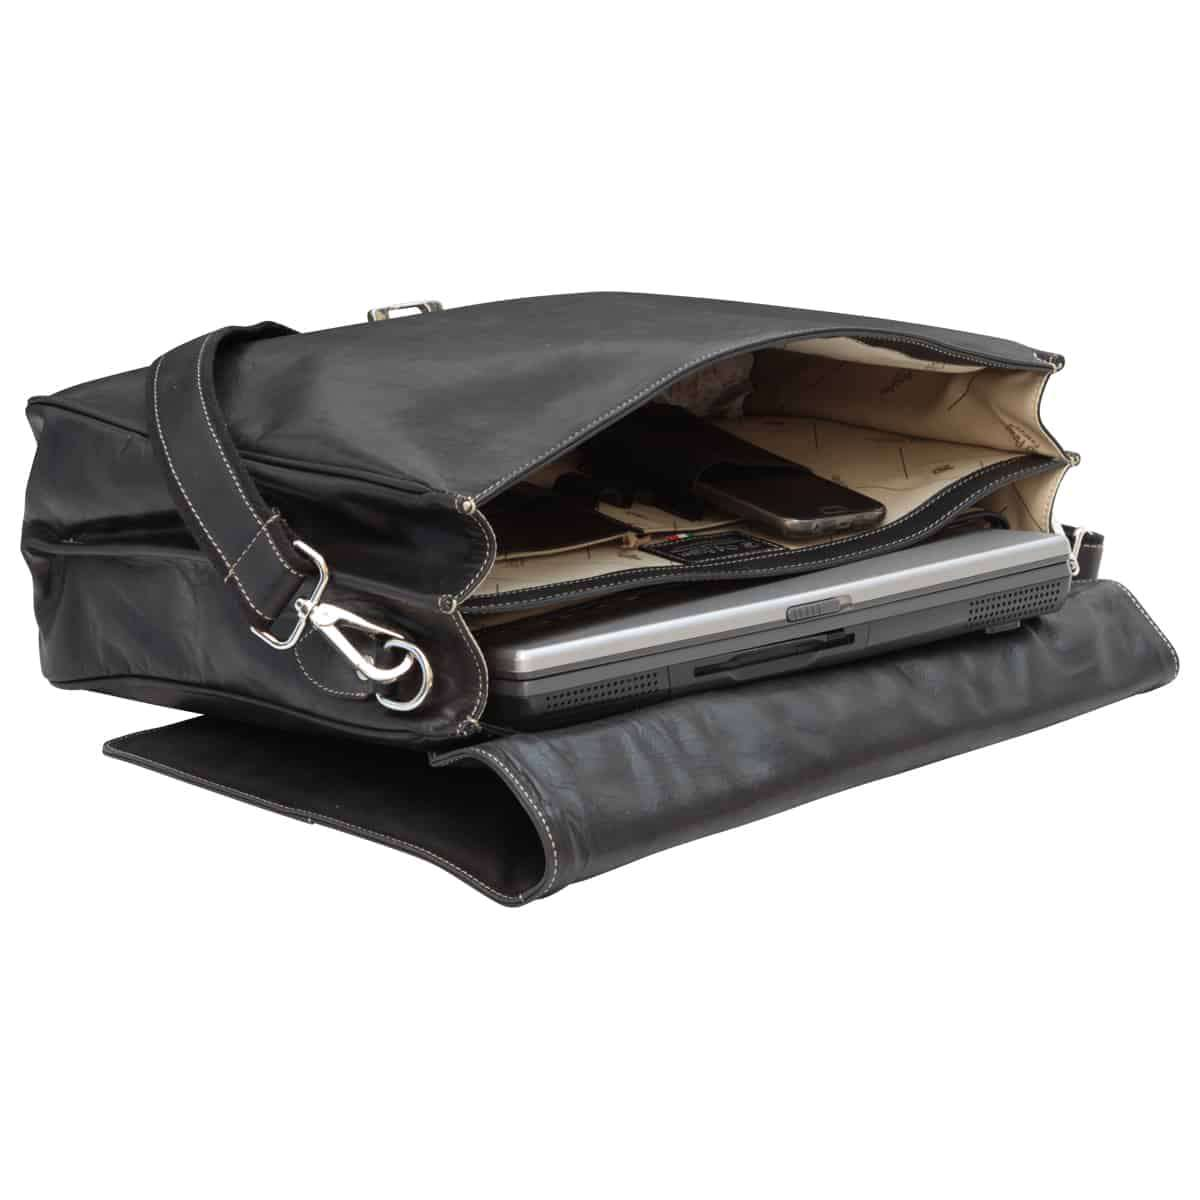 Oiled Calfskin Leather Briefcase with frontal zip pocket - Black | 073861NE E | Old Angler Firenze